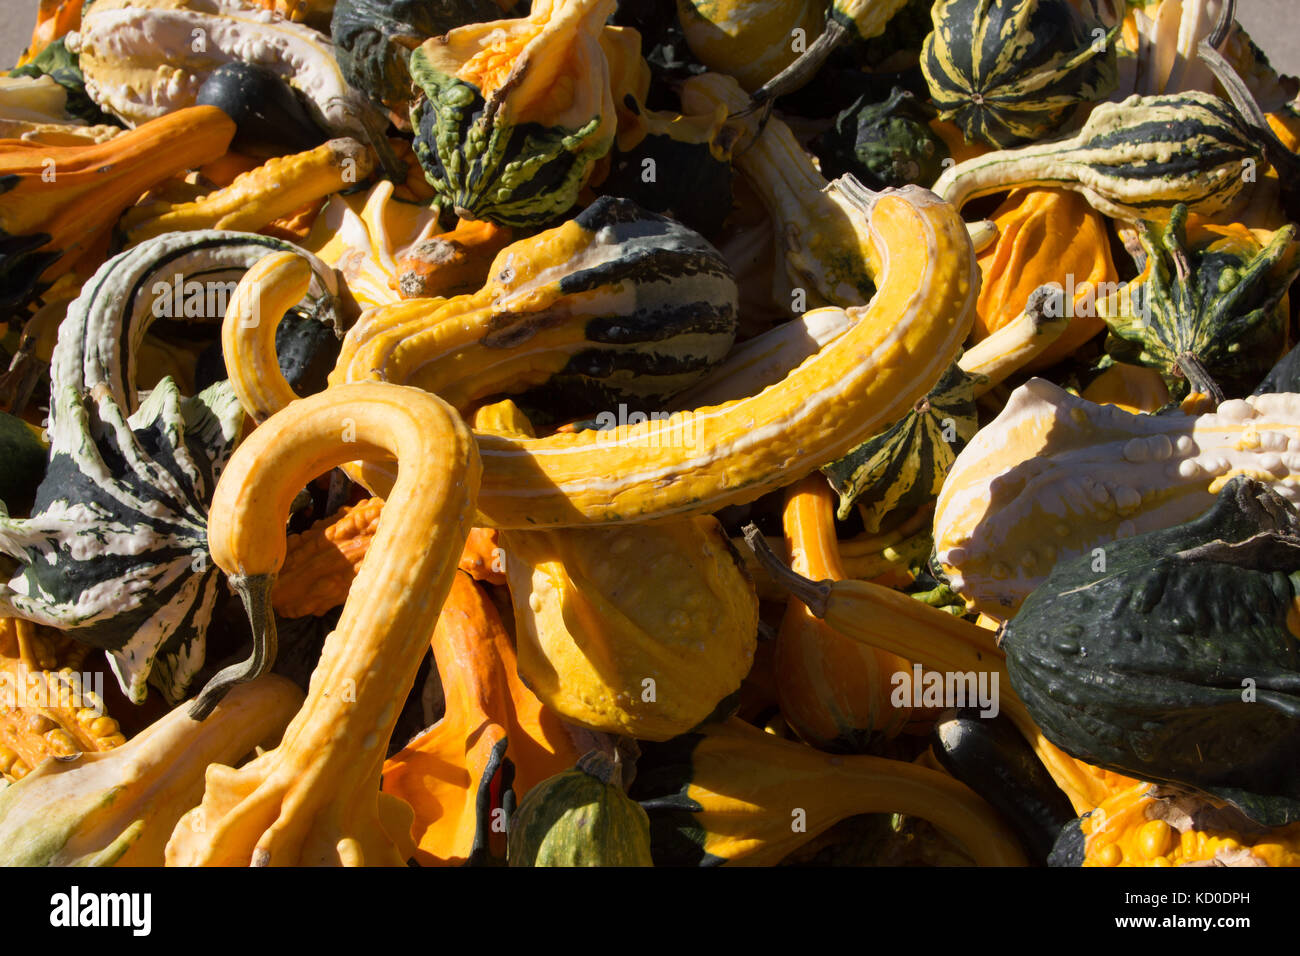 Decorative Gourds On Sale For Fall Stock Photo 162894665 Alamy